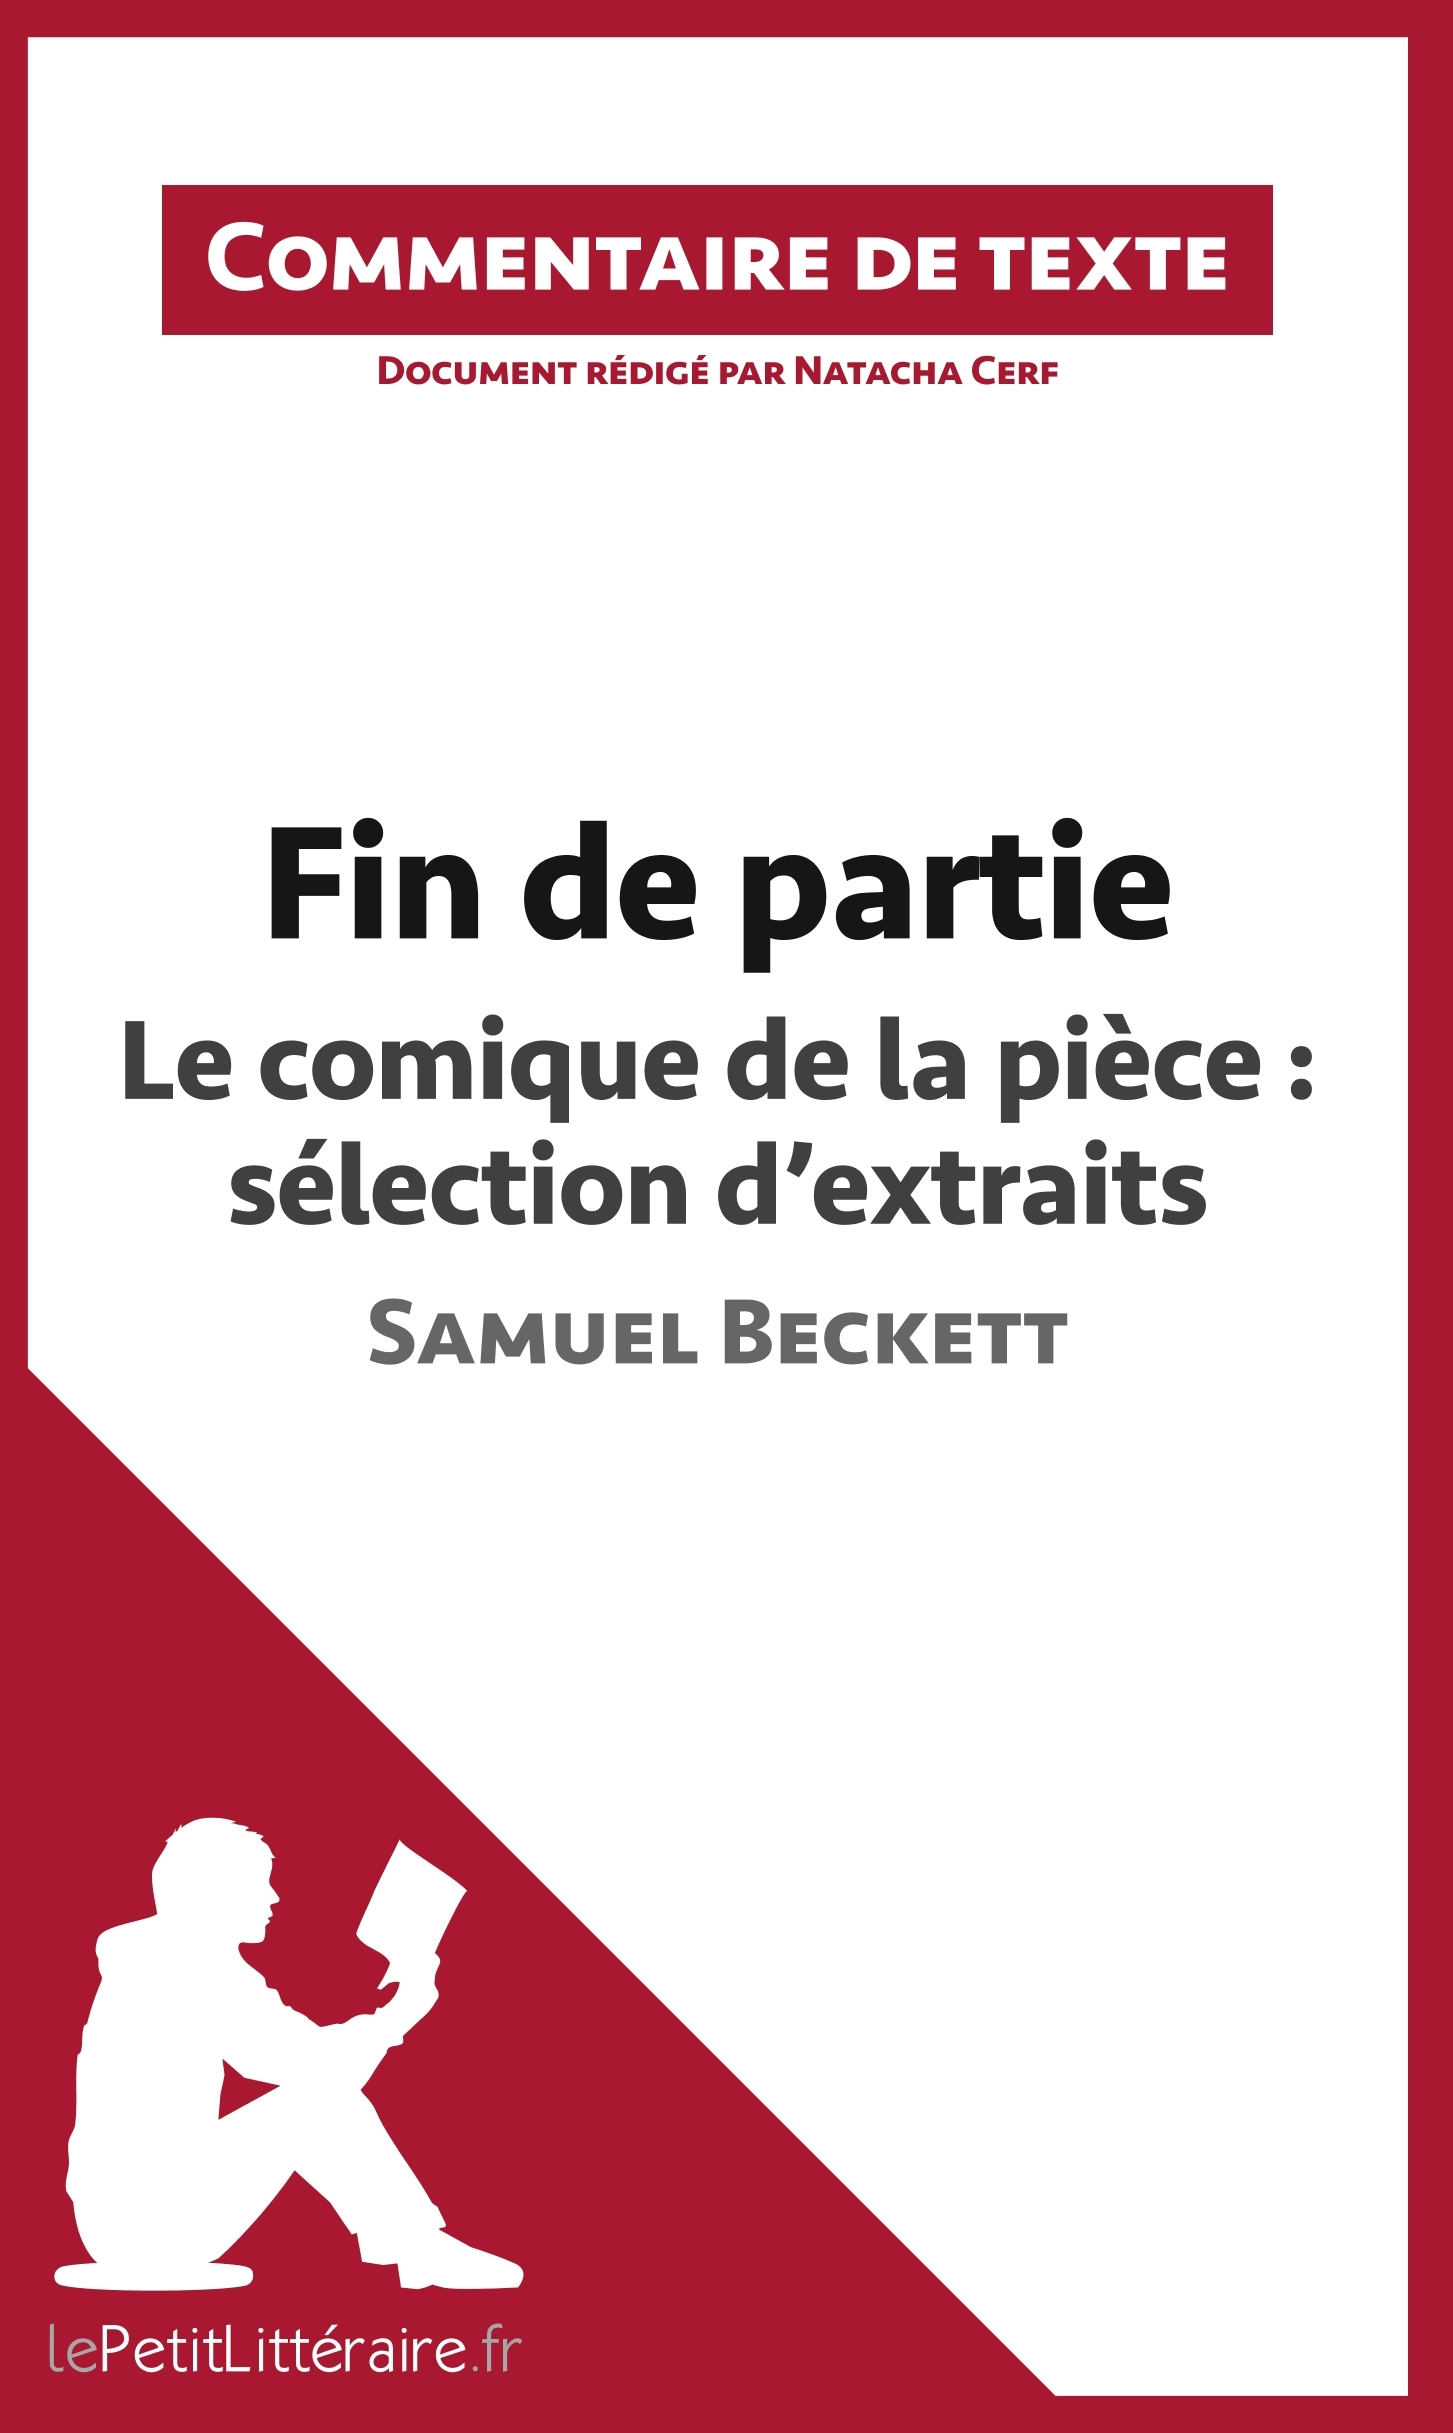 COMMENTAIRE COMPOSE FIN DE PARTIE DE BECKETT LE COMIQUE DE LA PIECE SELECTION D